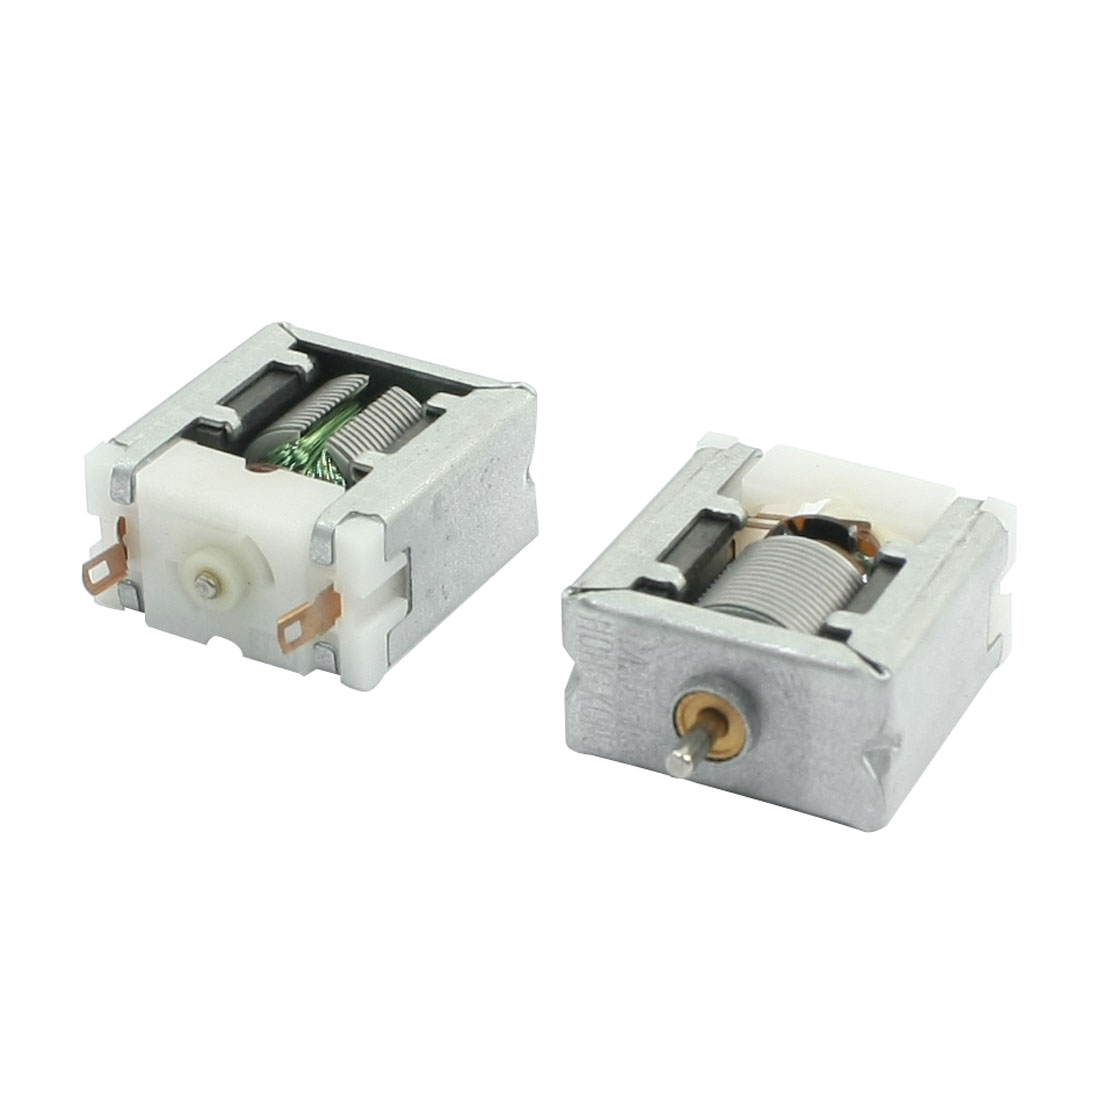 2pcs-3V-13500RPM-Bare-Magnetic-Carbon-Brush-DC-Micro-Vibration-Motor